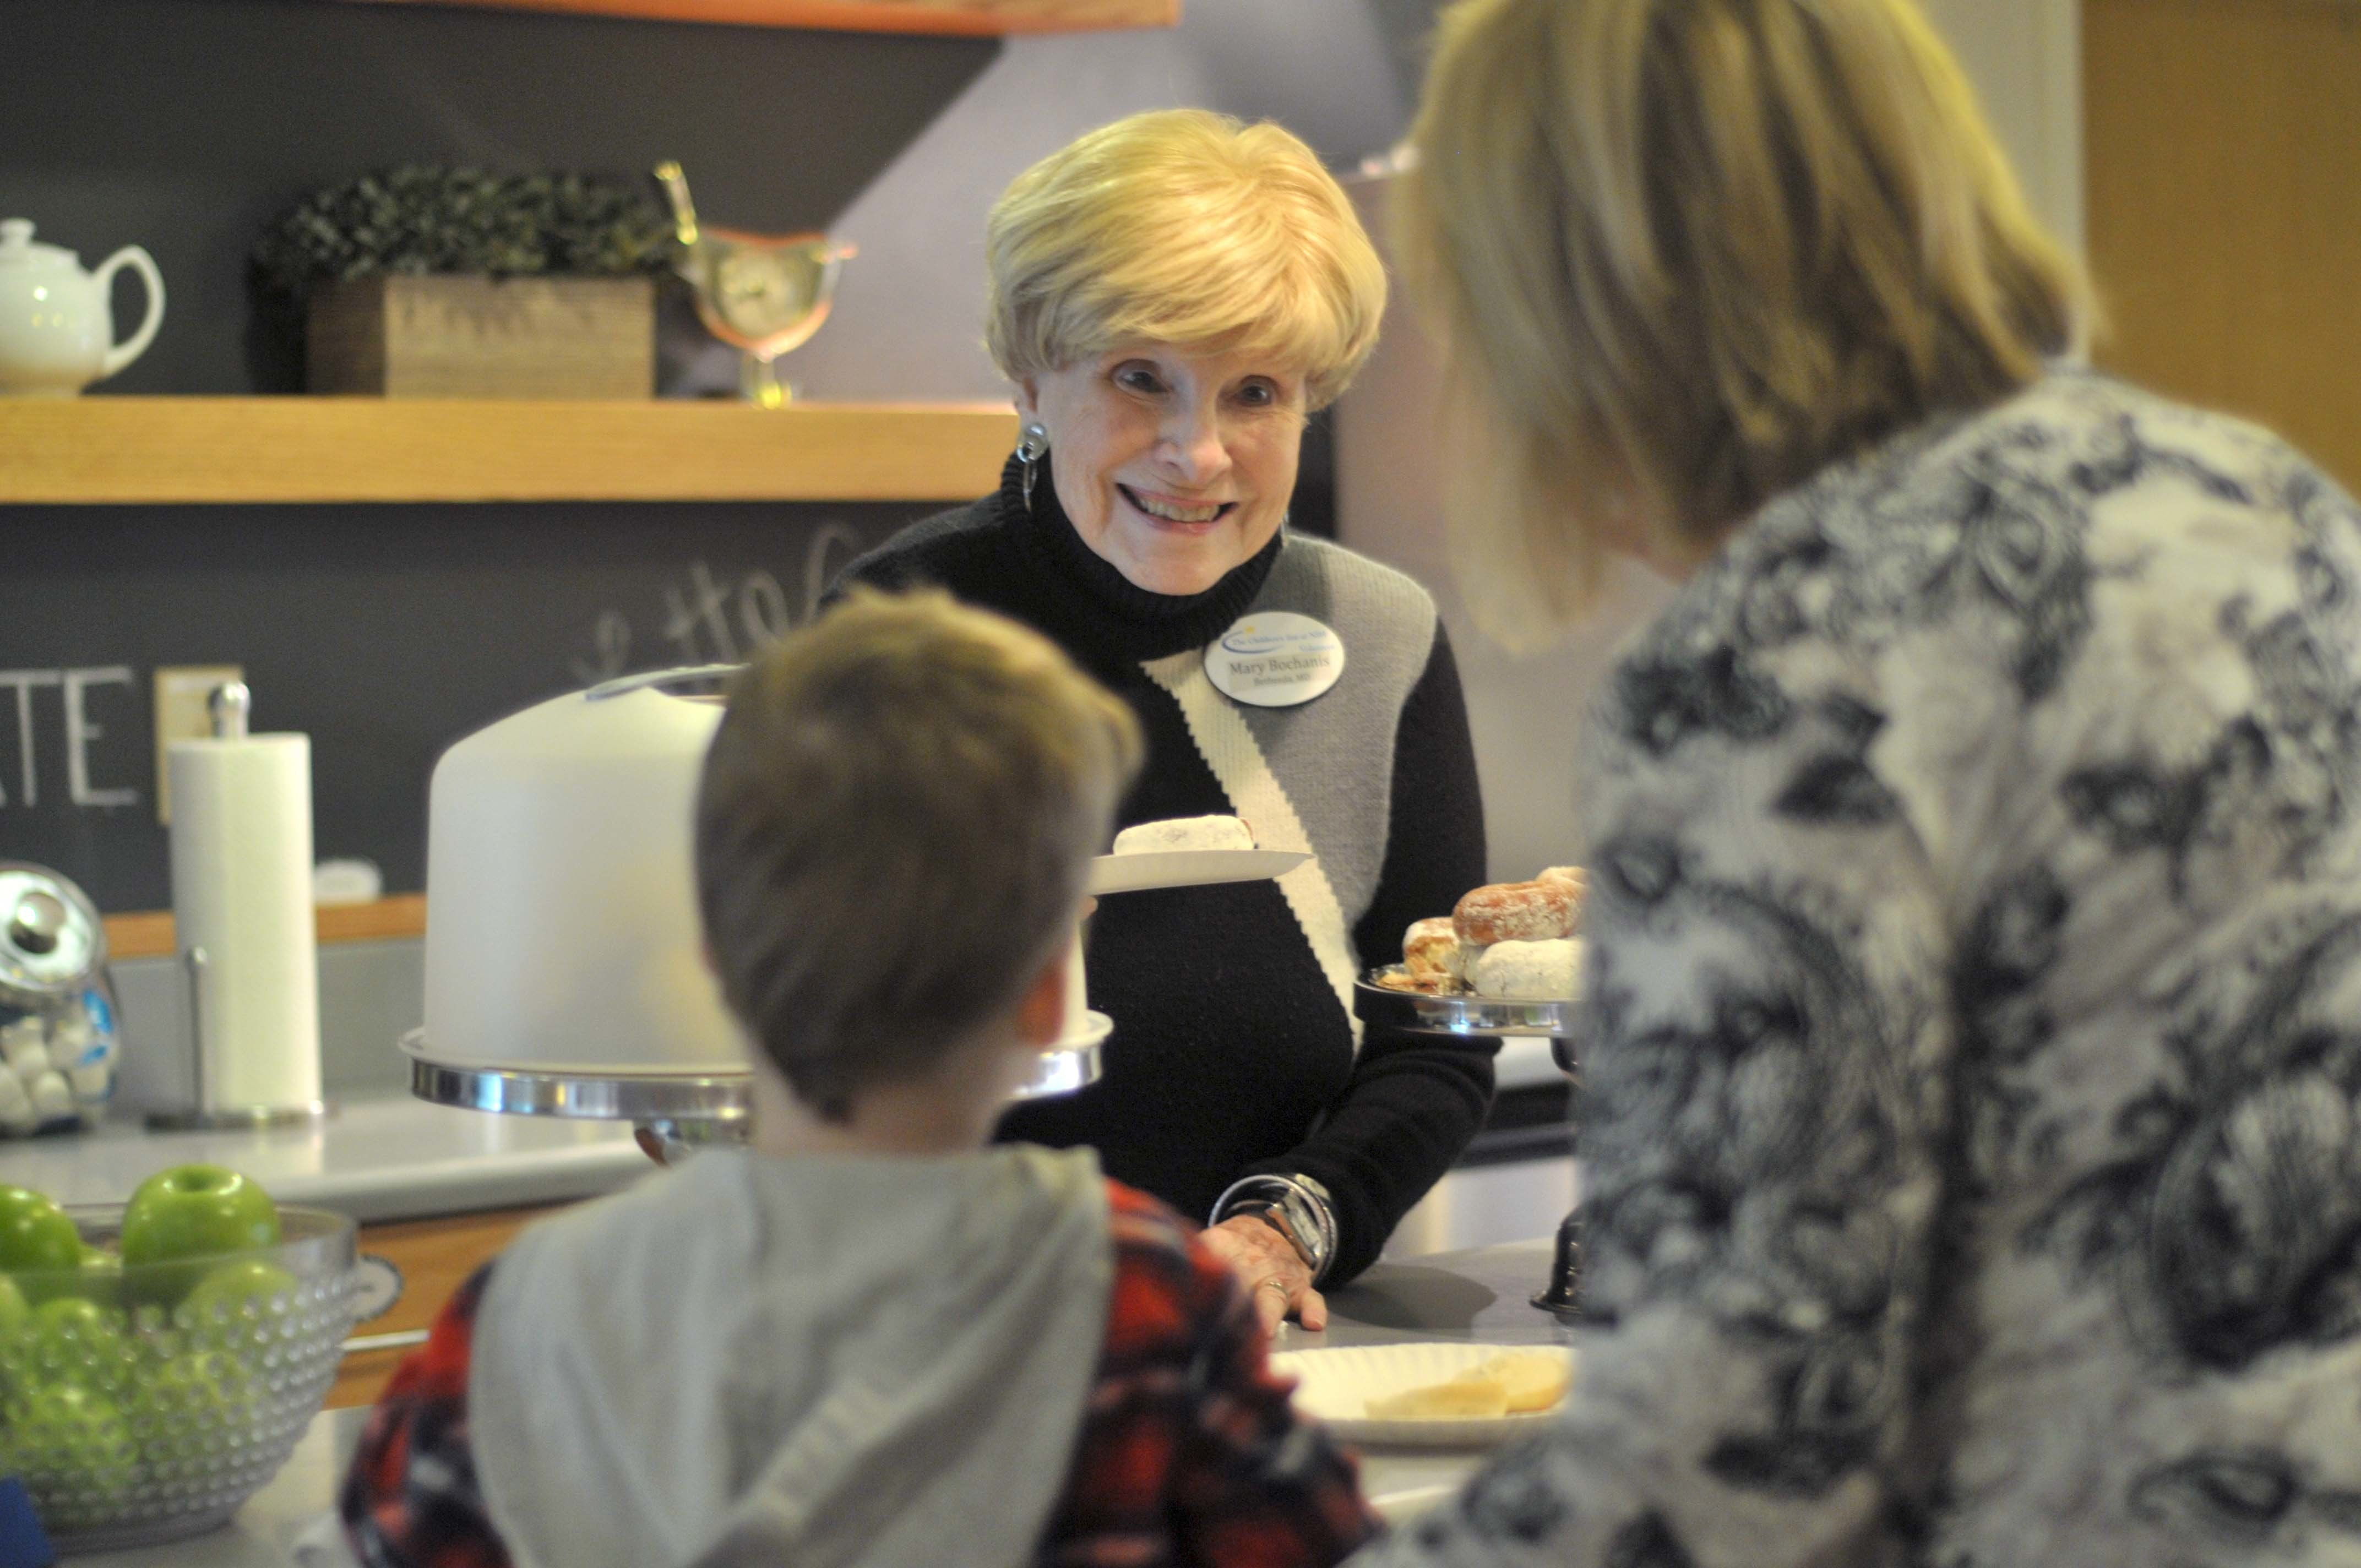 Mary Bochanis who has volunteered at the Childrens Inn at the NIH for over 26 years serves breakfast to a family in the bistro area